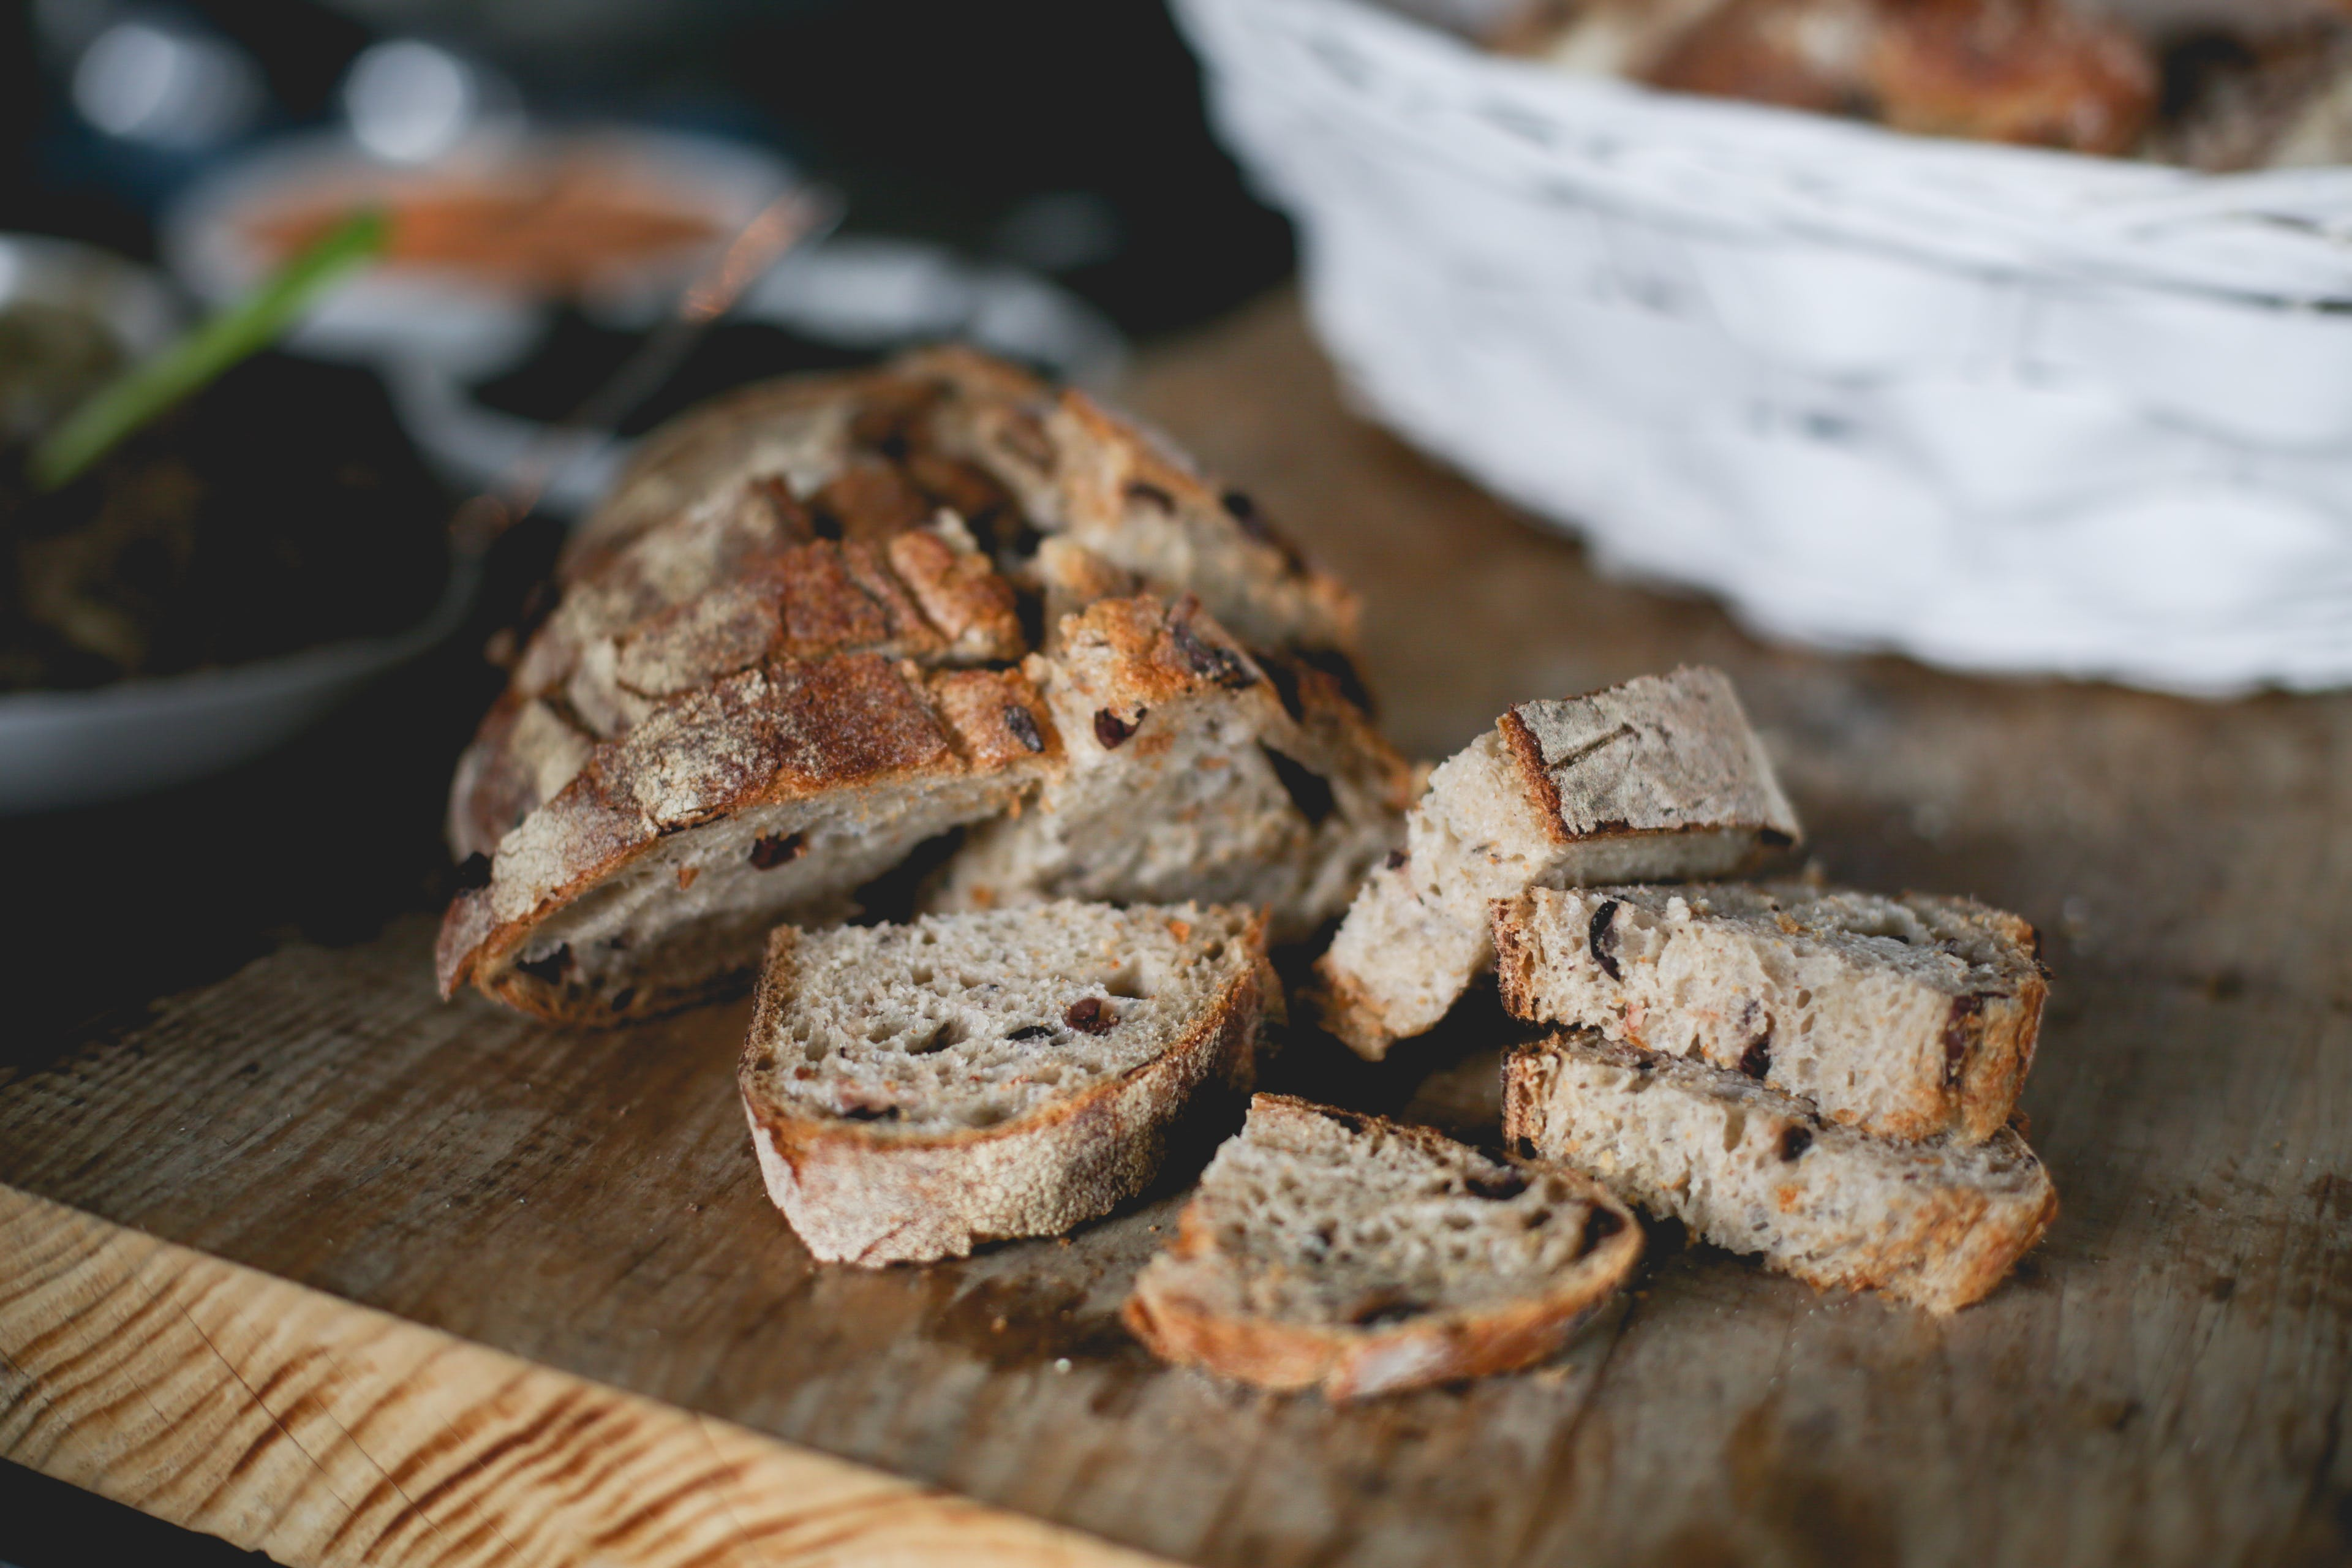 Selective Focus Photography of Slices of Breads